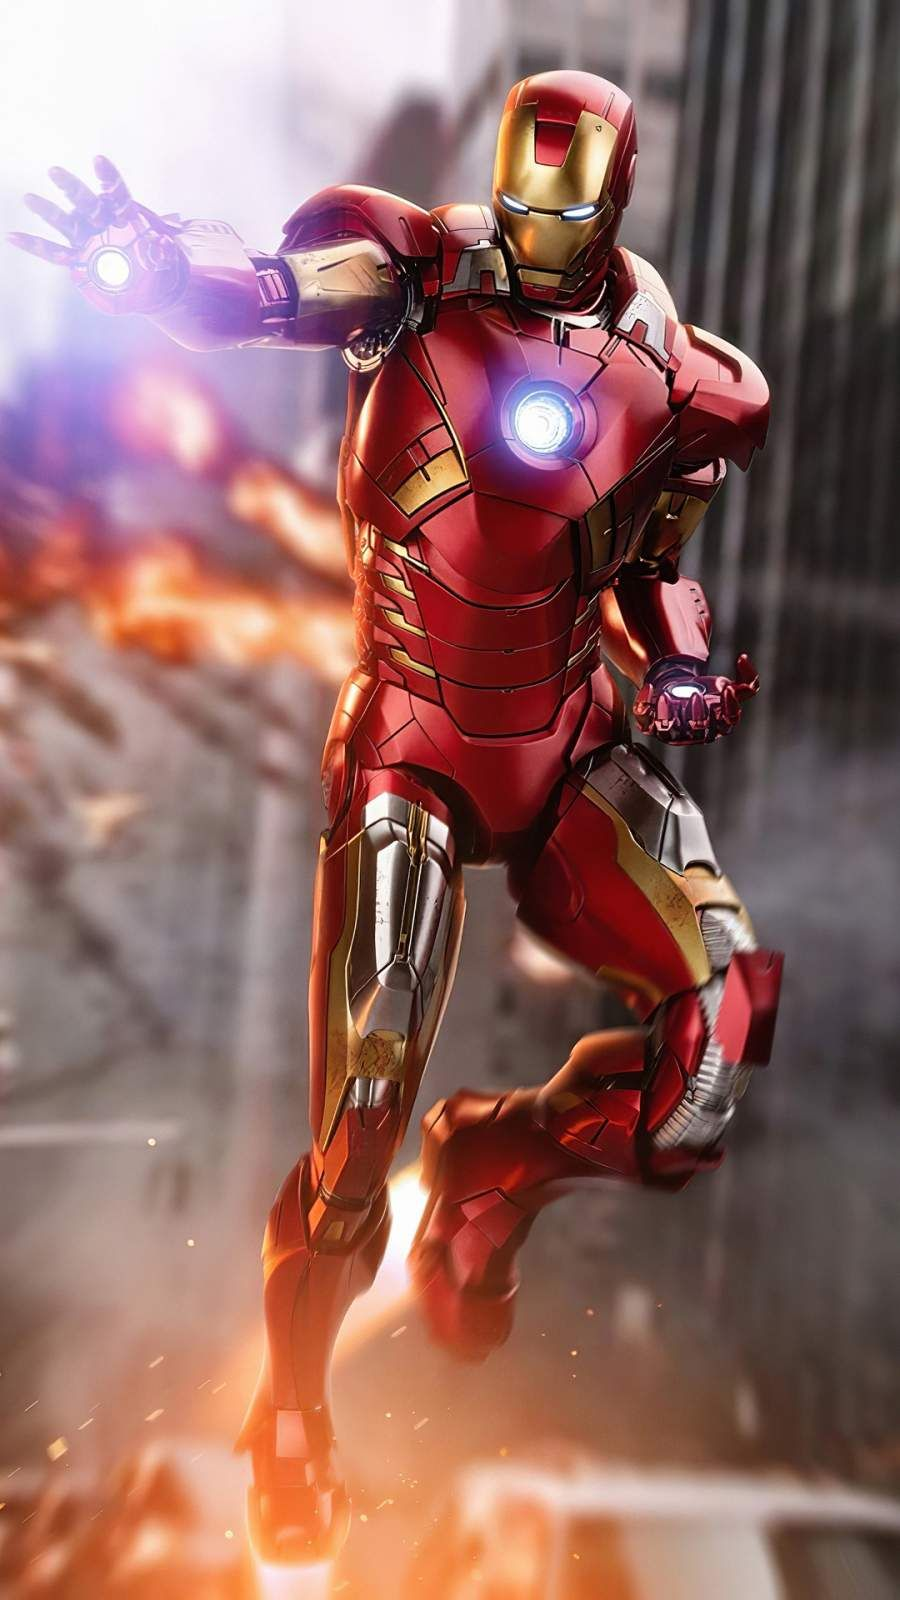 Iron Man 4k Iphone Wallpaper Iphone Wallpapers In 2020 Iron Man Wallpaper Iron Man Art Iron Man Avengers